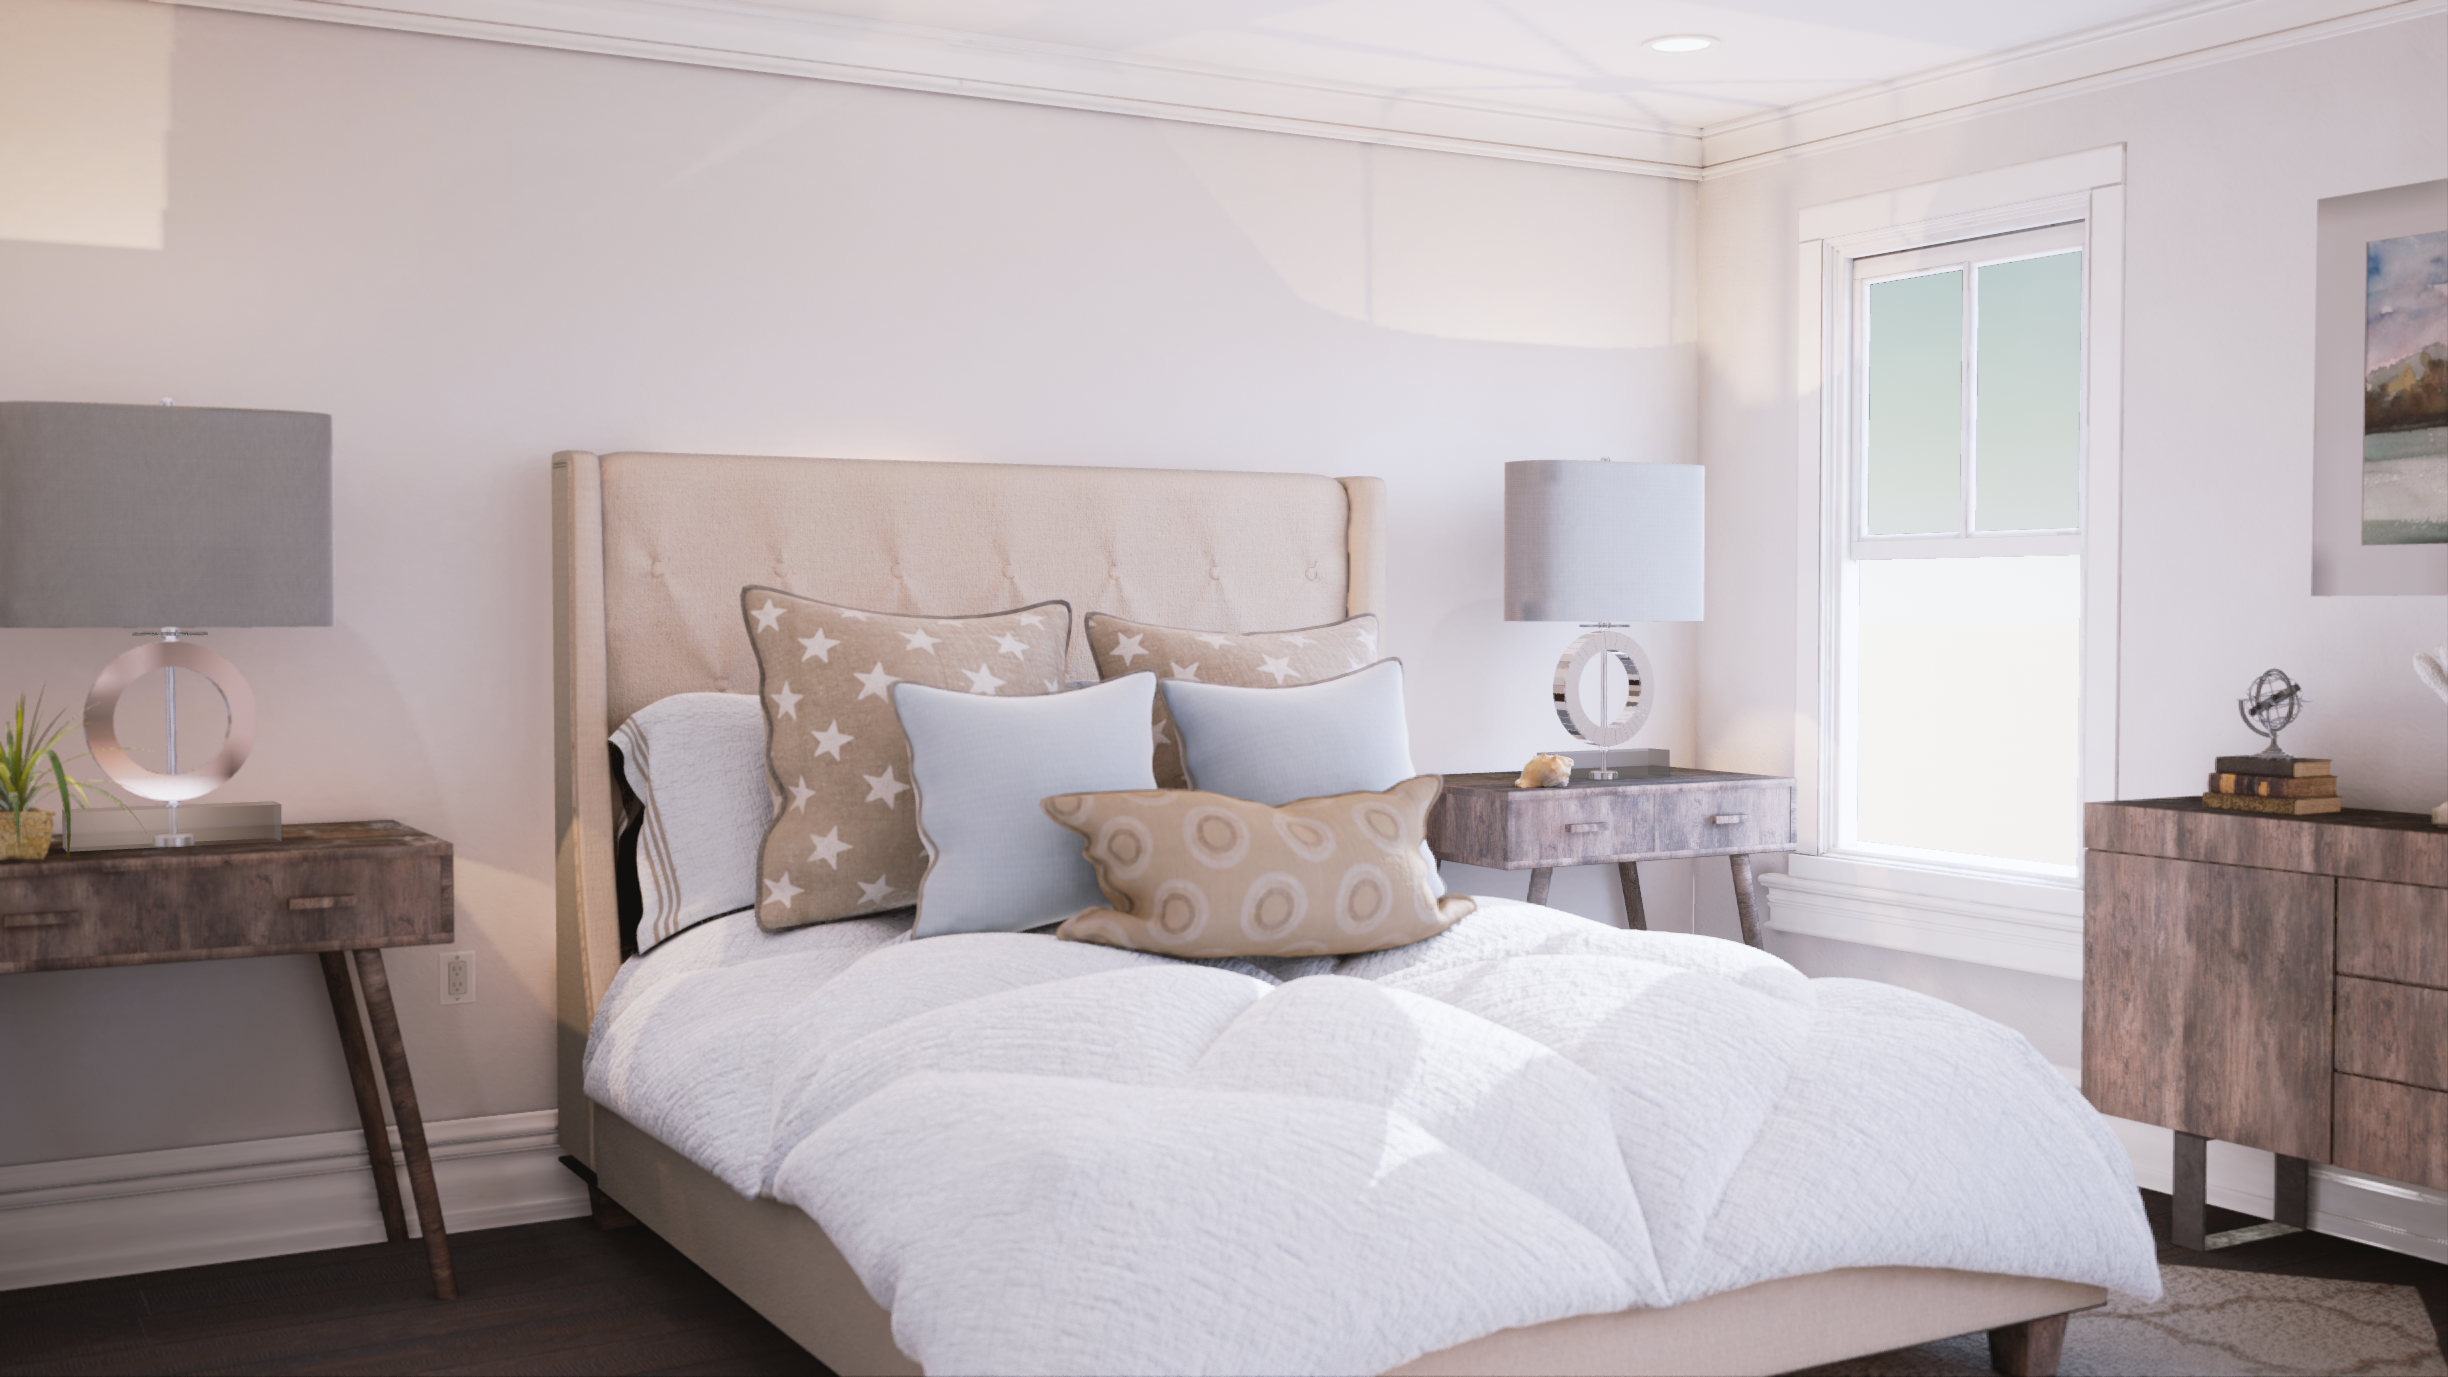 Bedroom Rendering by Mythic VR